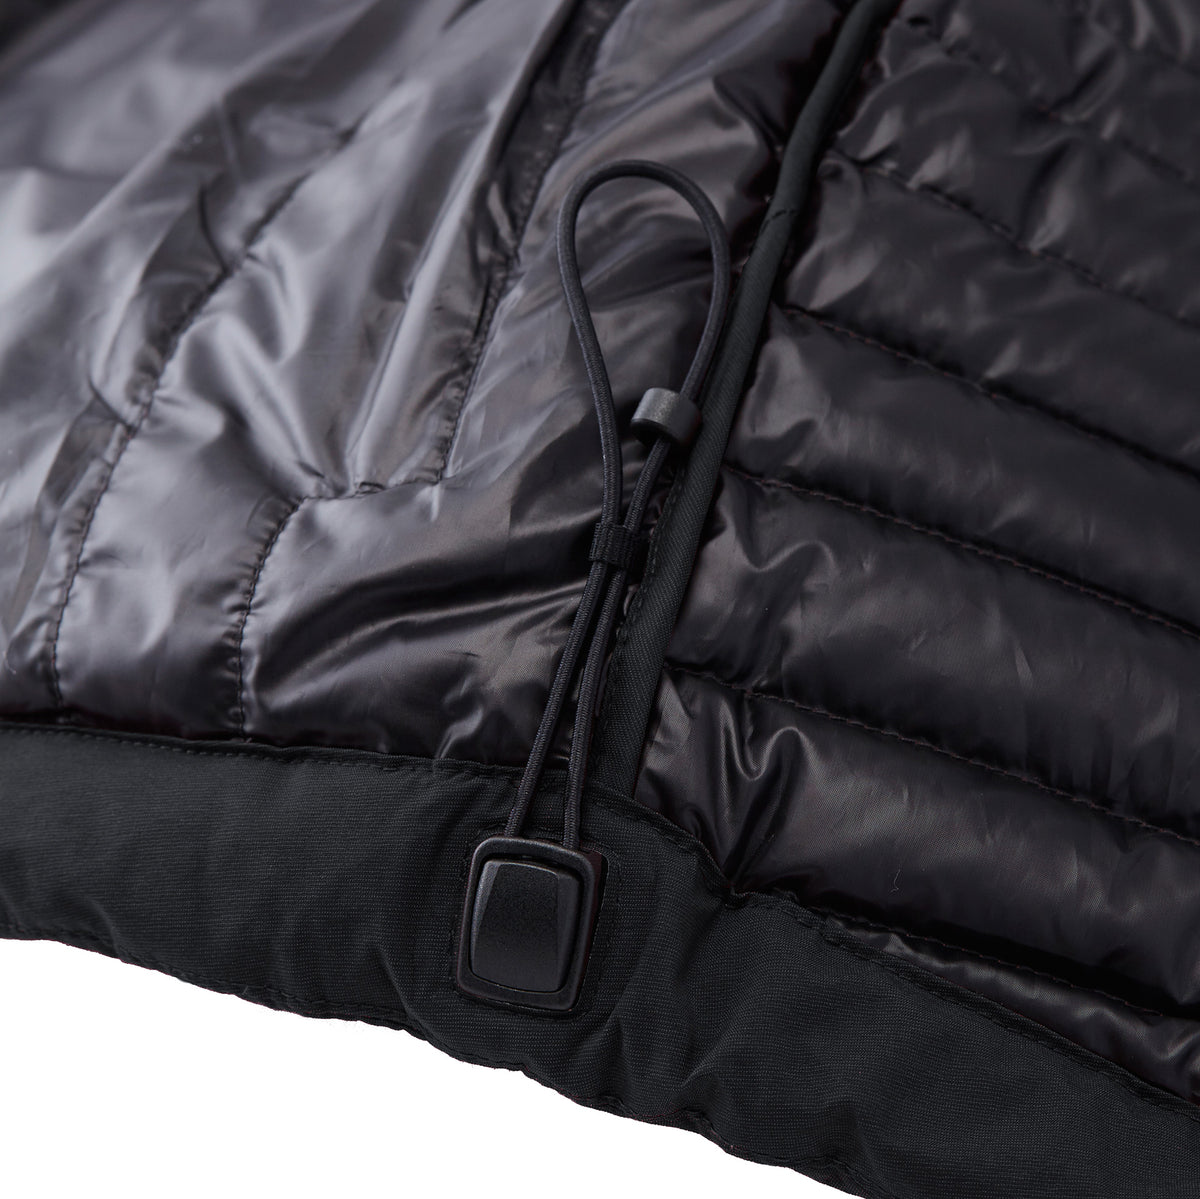 Passage Hooded Jacket Waist Adjuster